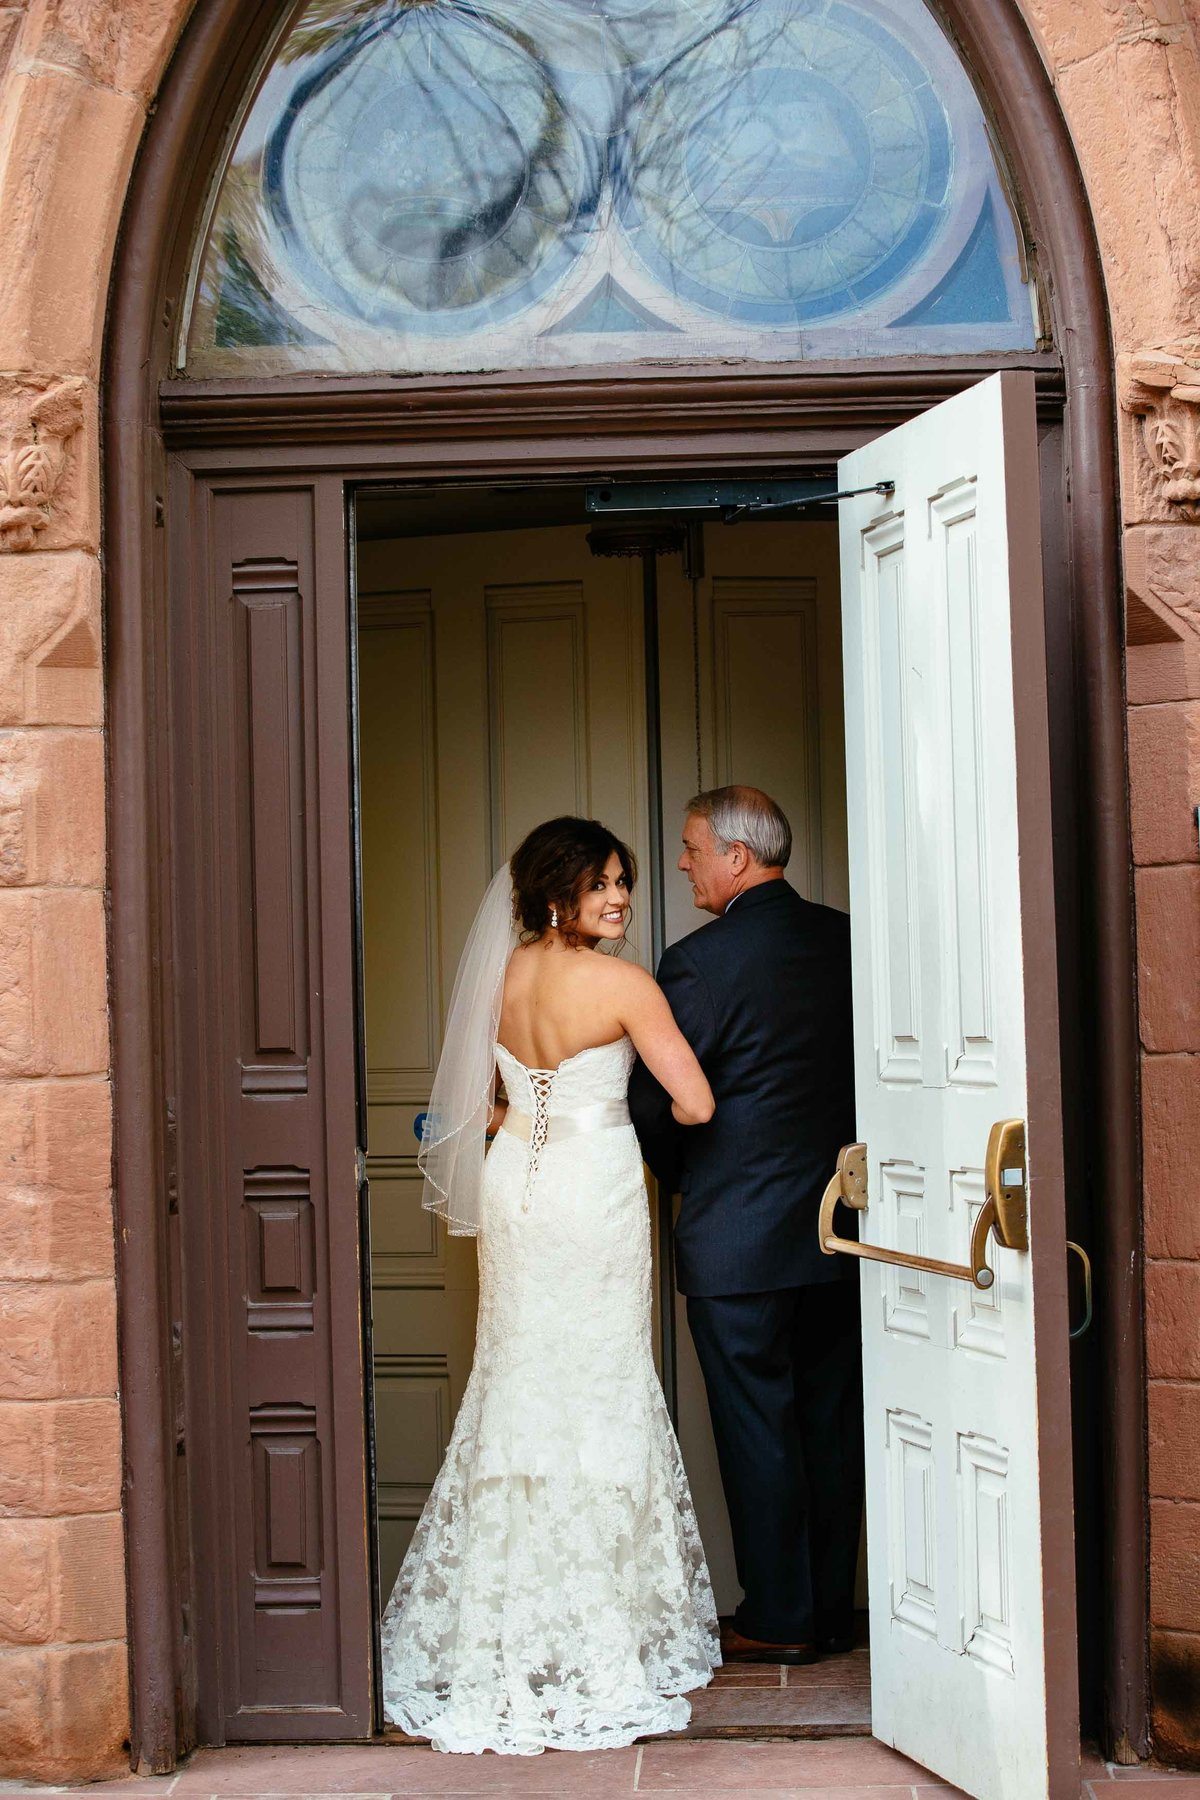 A bride walking into a church holding her father's hand.